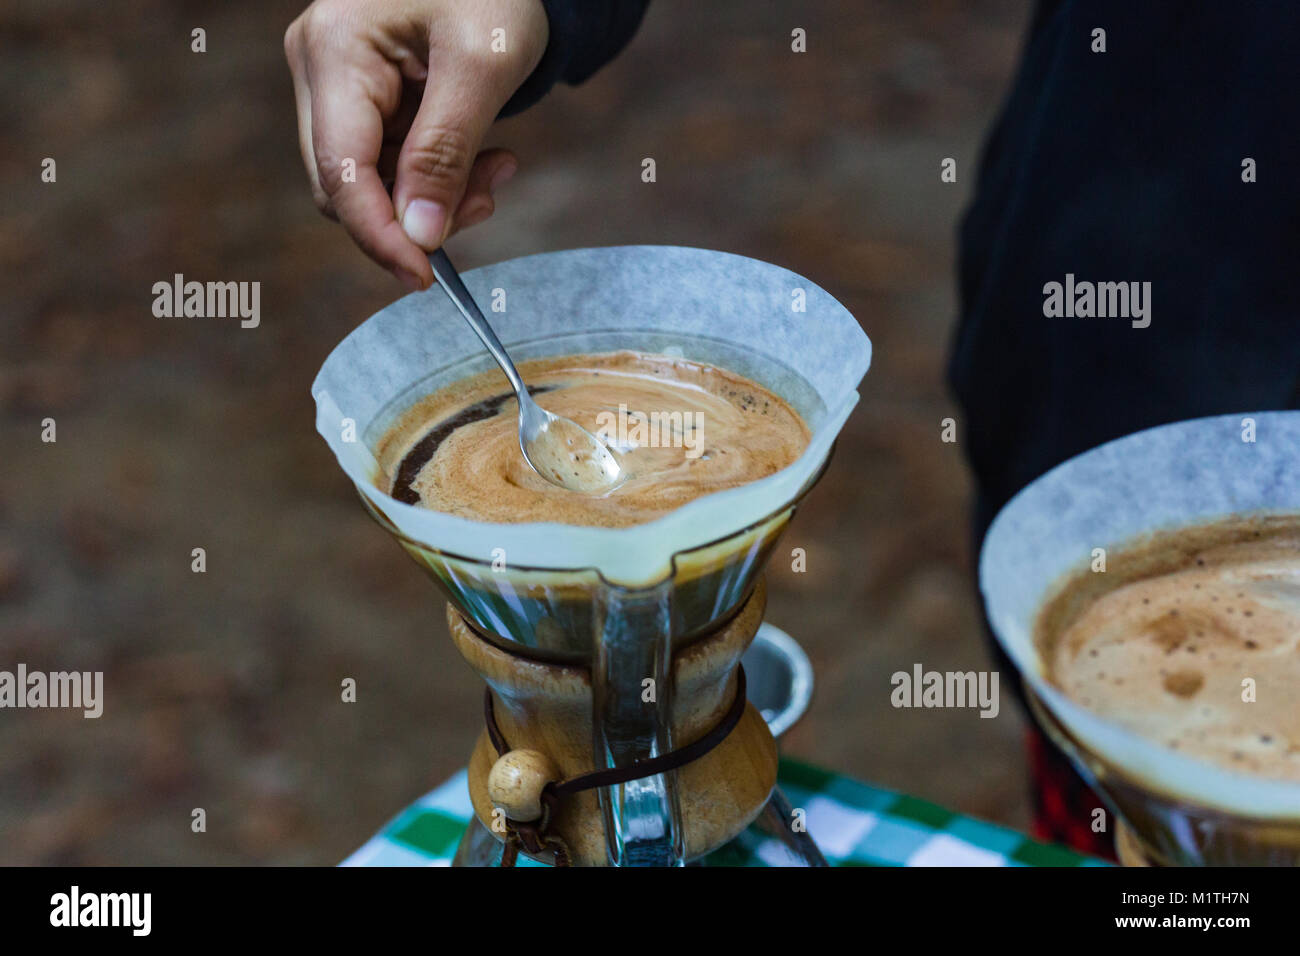 Barista stirs pour over coffee in artisan glass brewer while outdoors - Stock Image